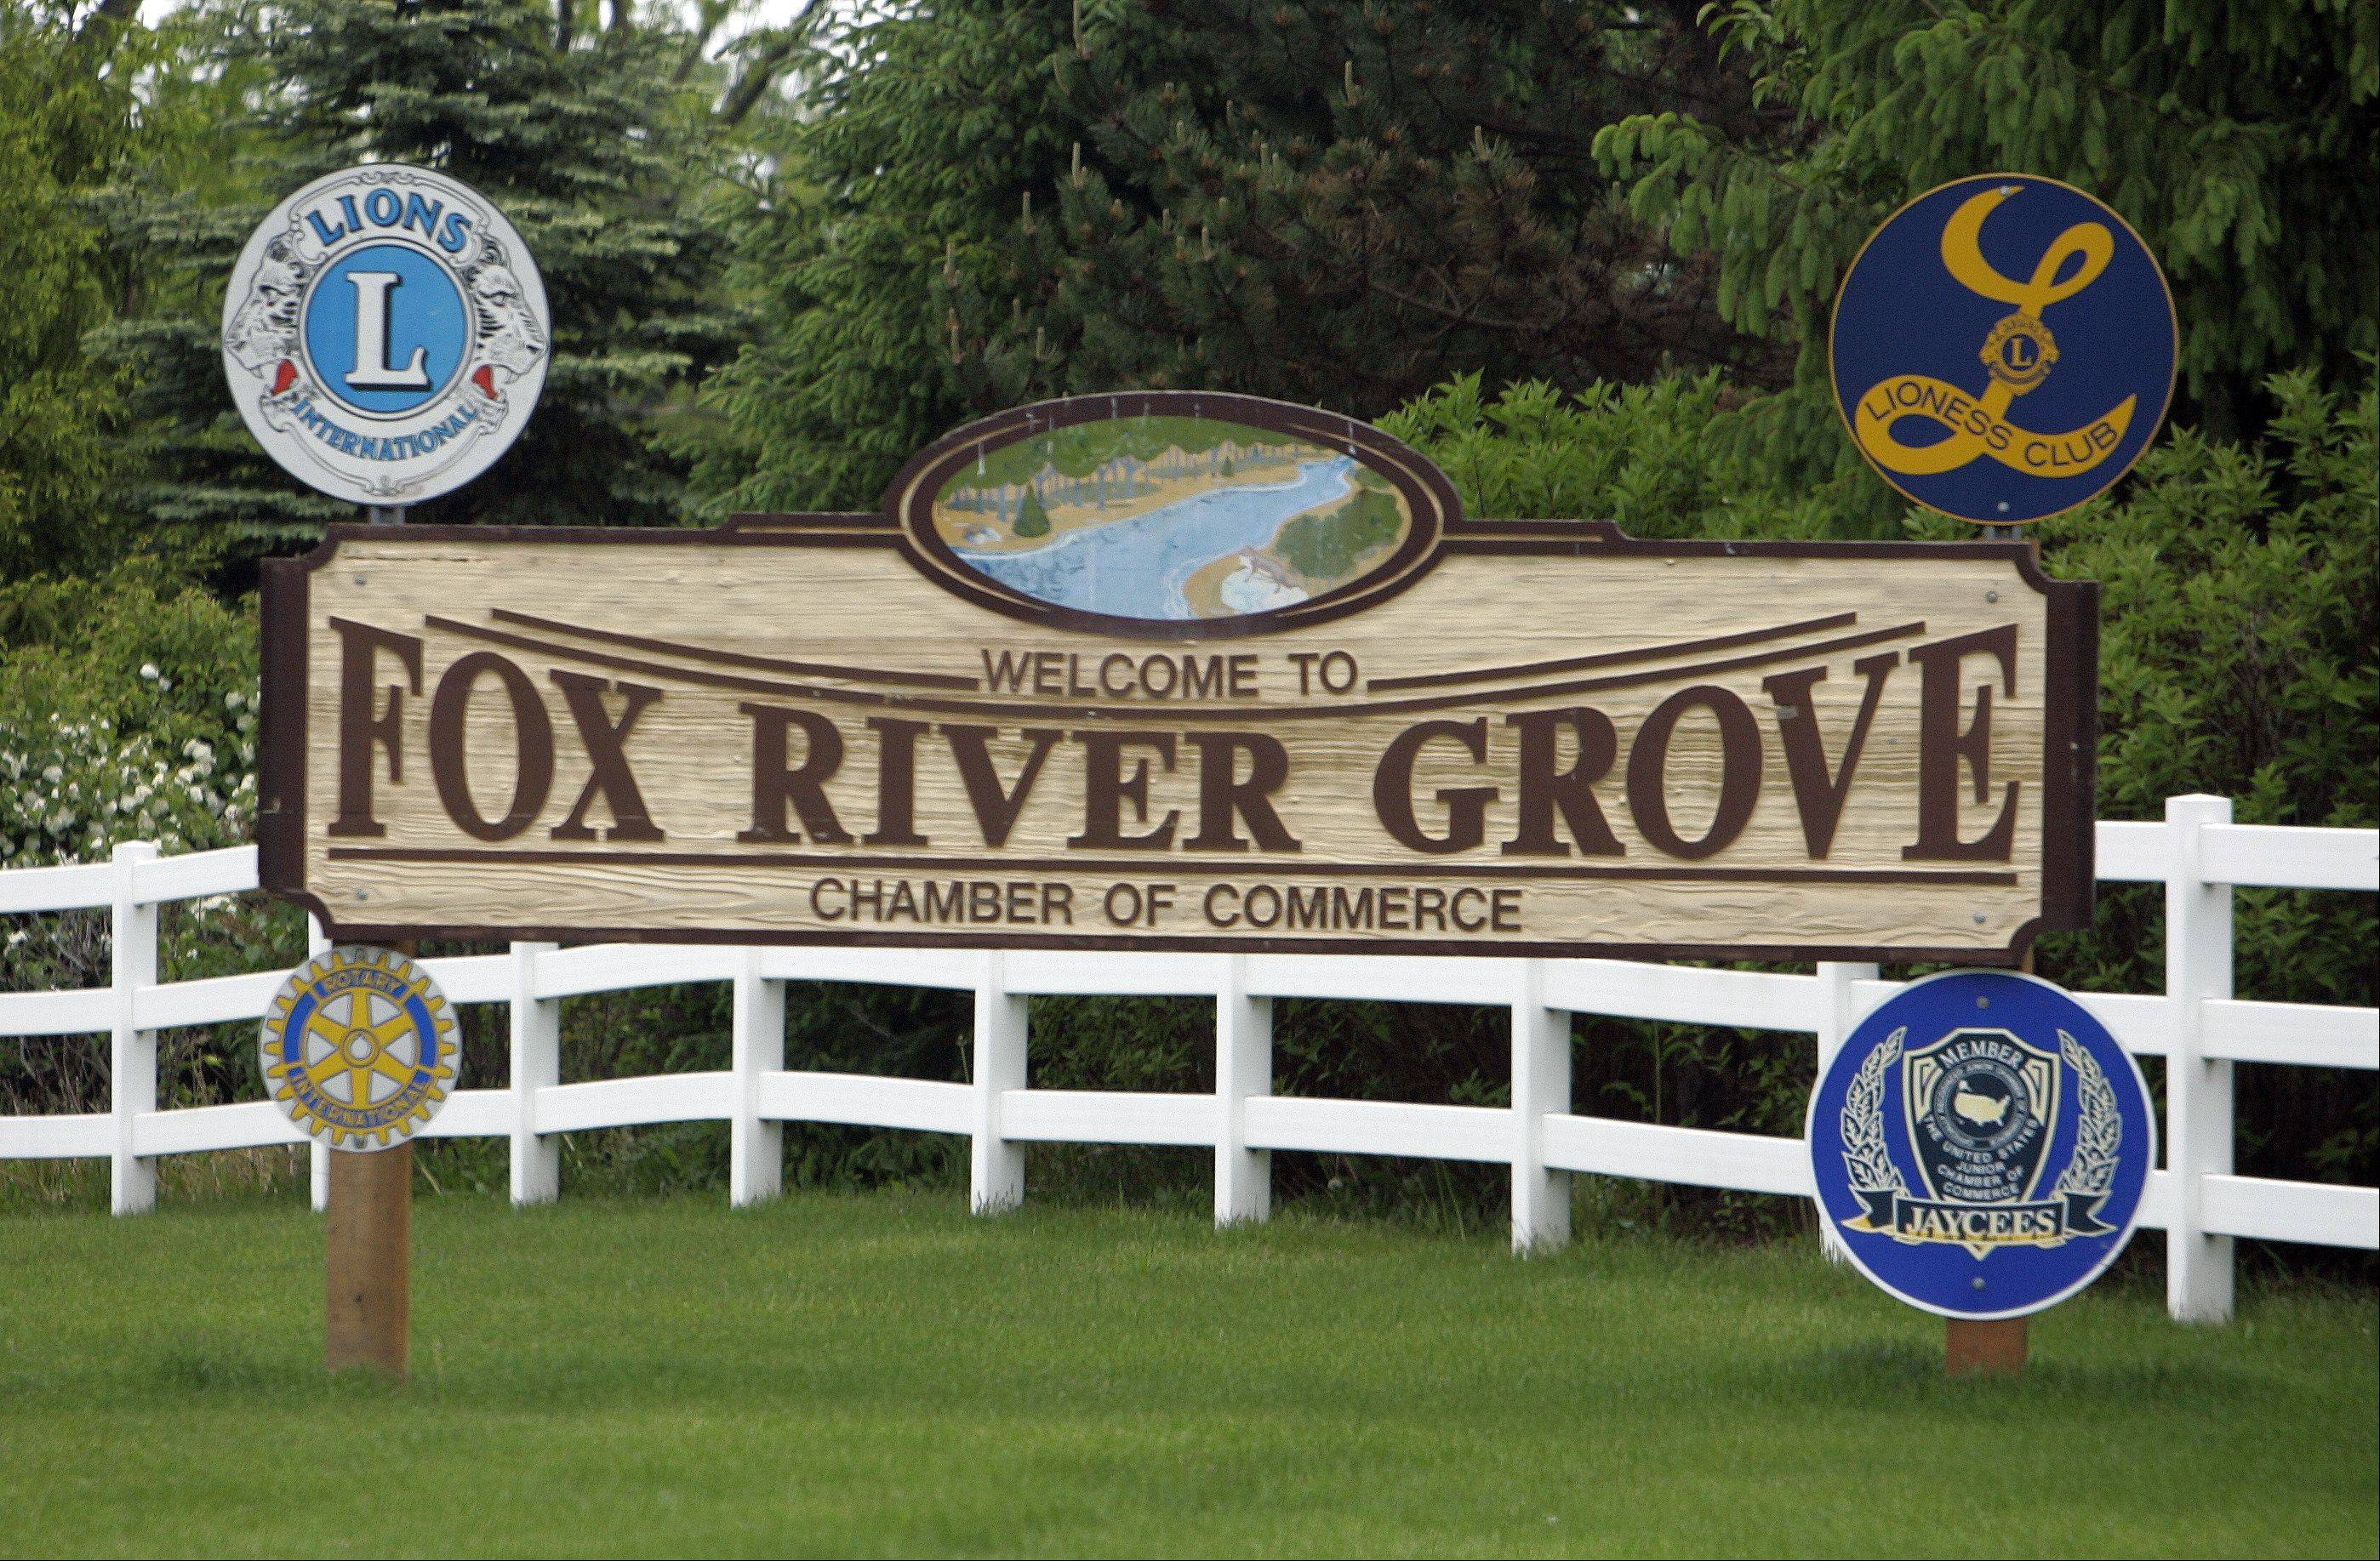 The Fox River Grove sign.